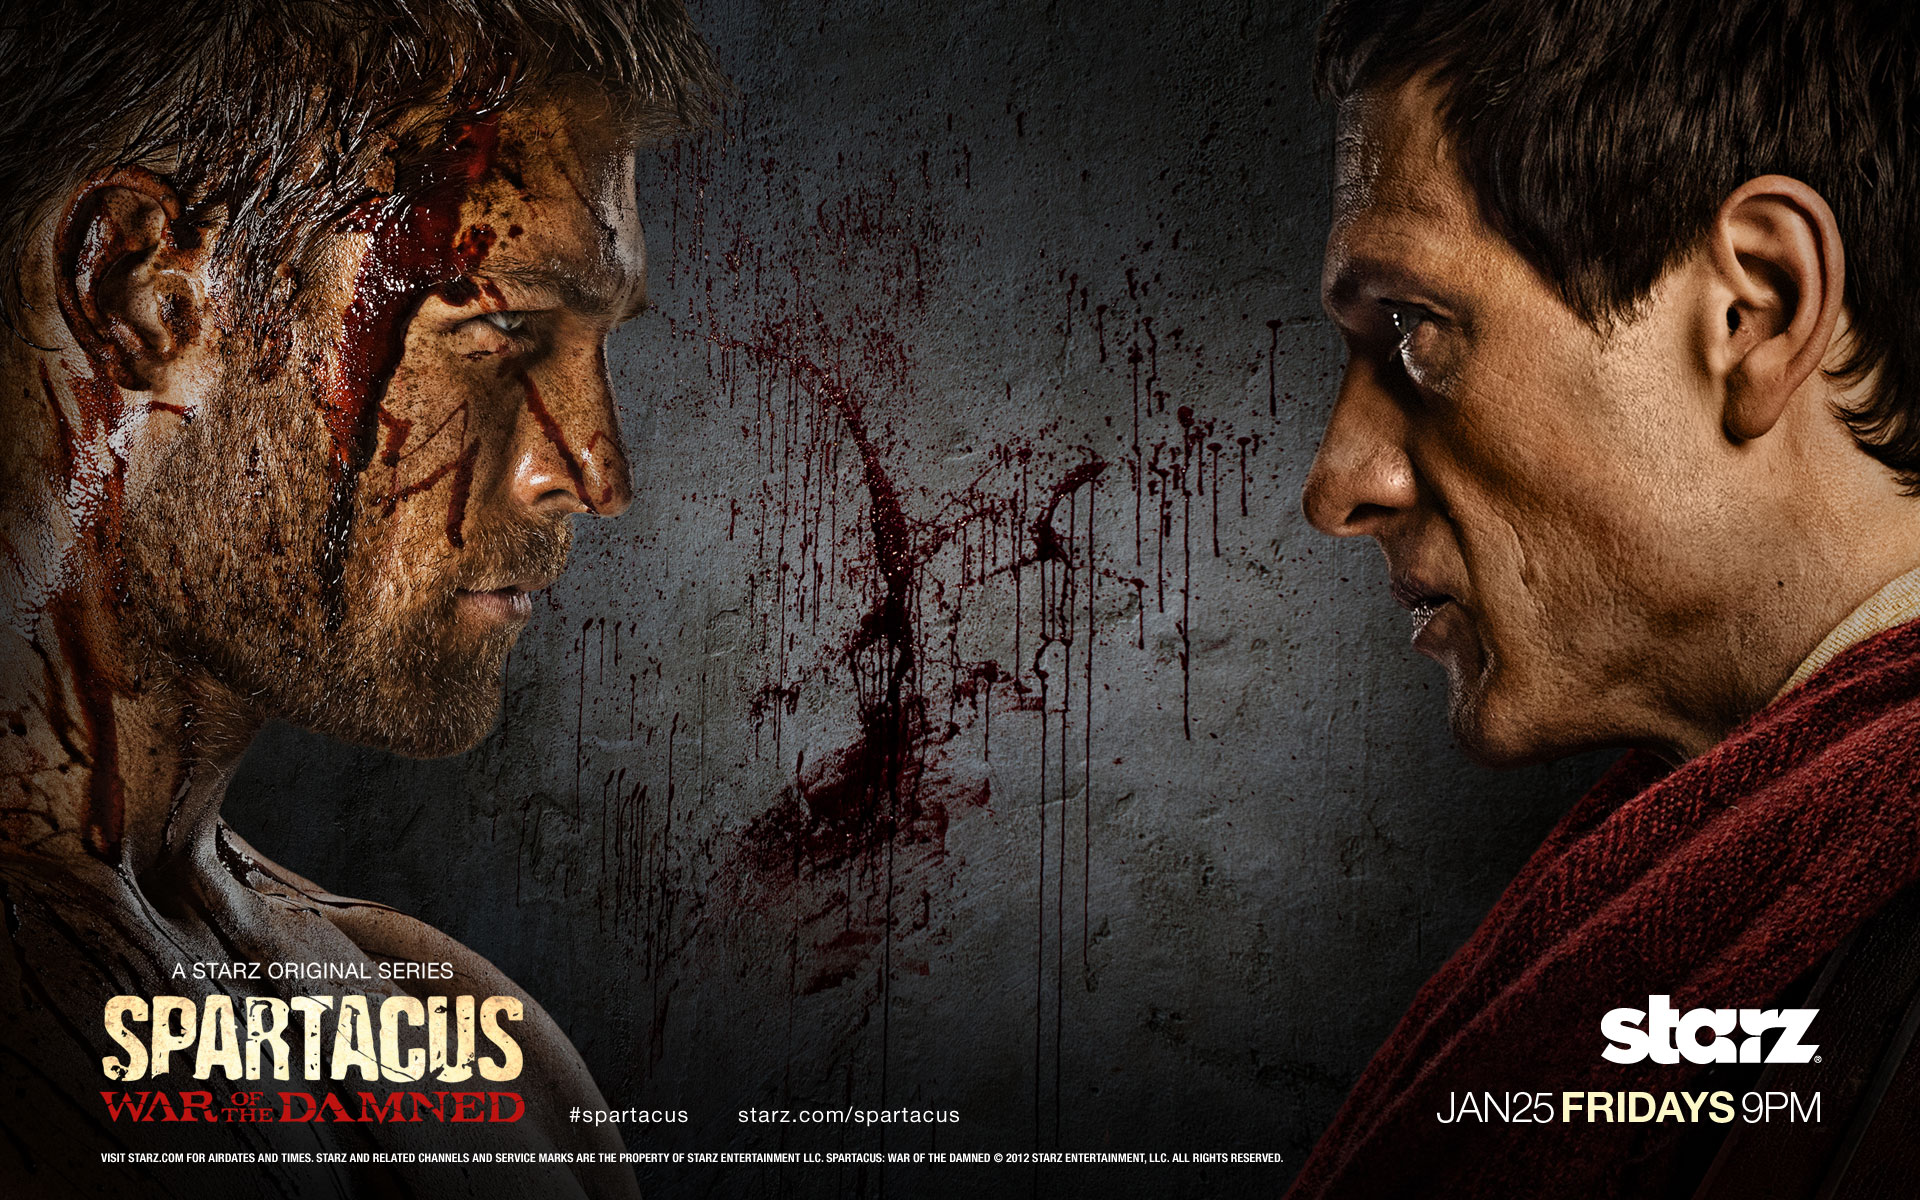 Libro Espartaco Spartacus War Of The Damned Último Episodio De La Serie 12 De